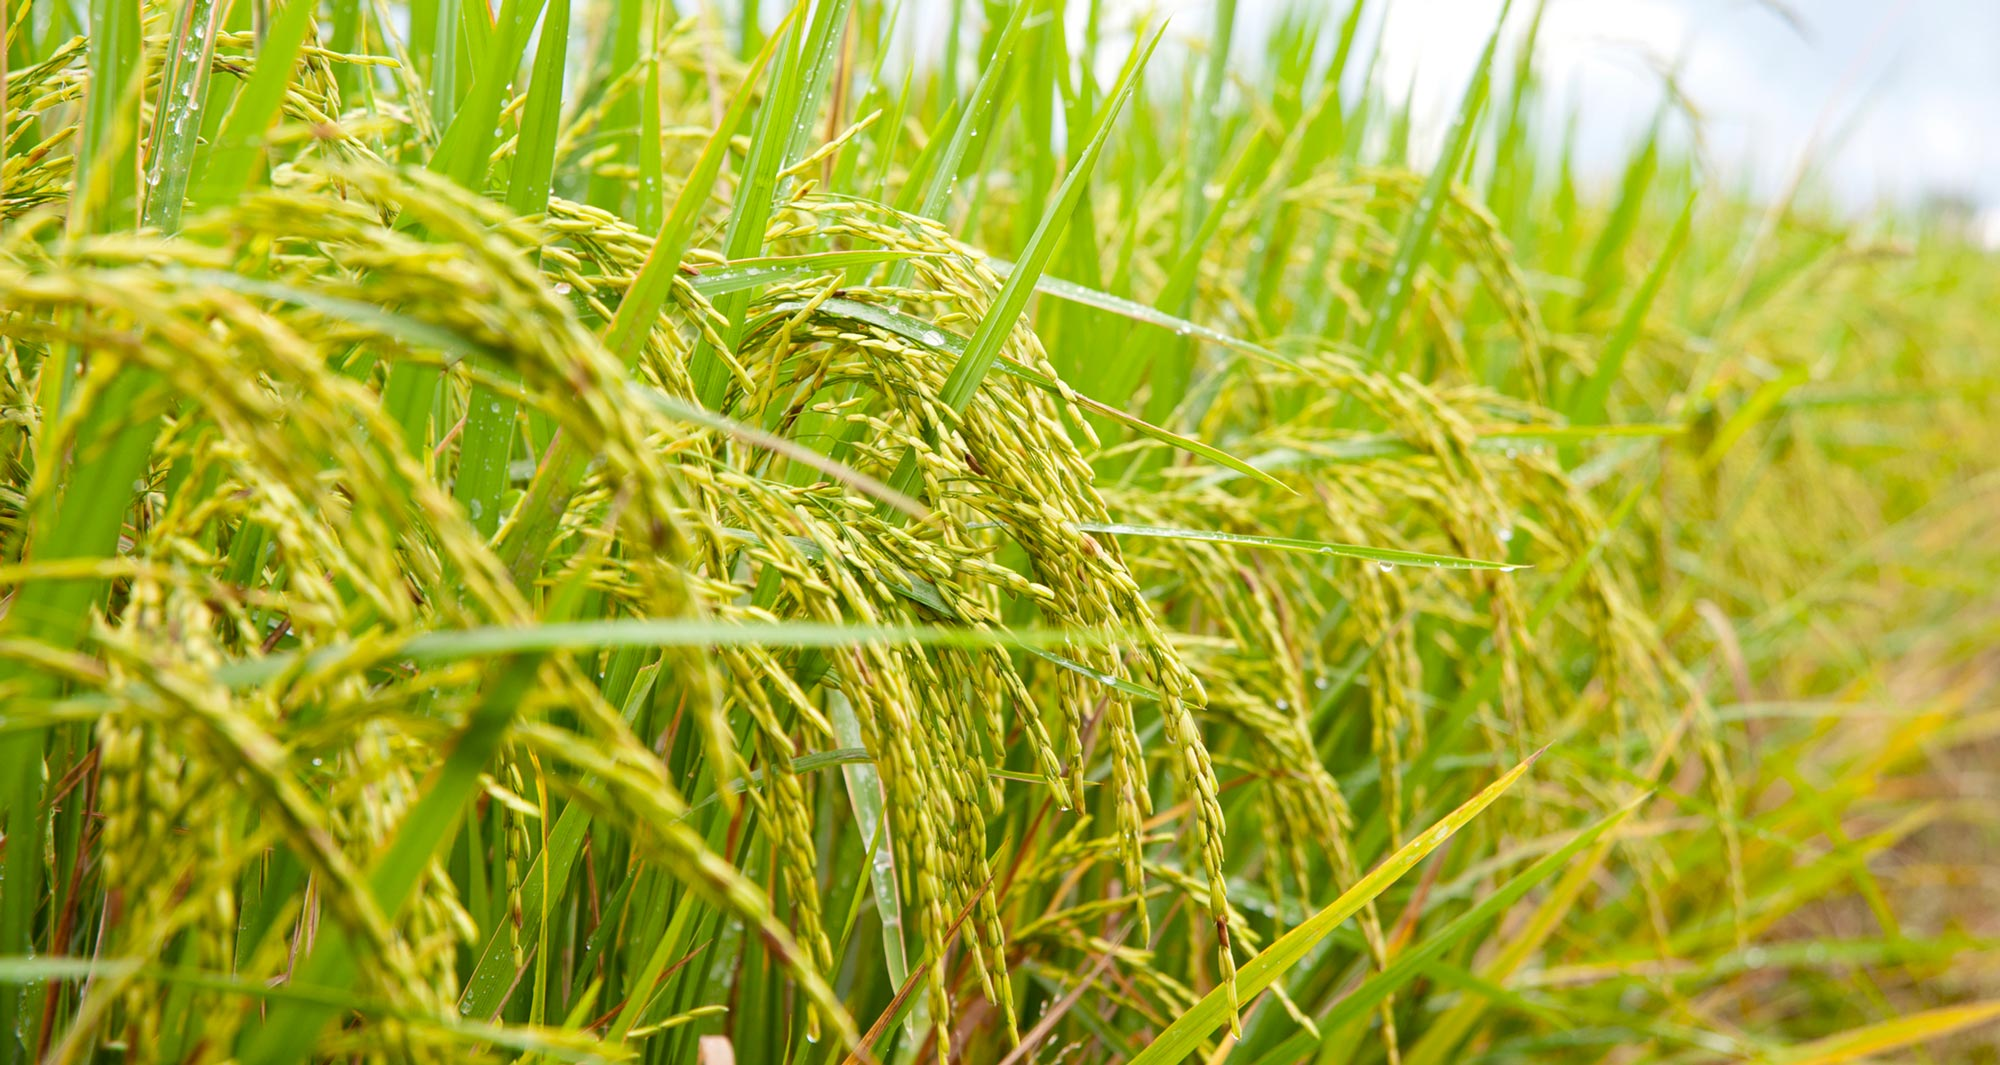 Arsenic in rice: how does it get there?